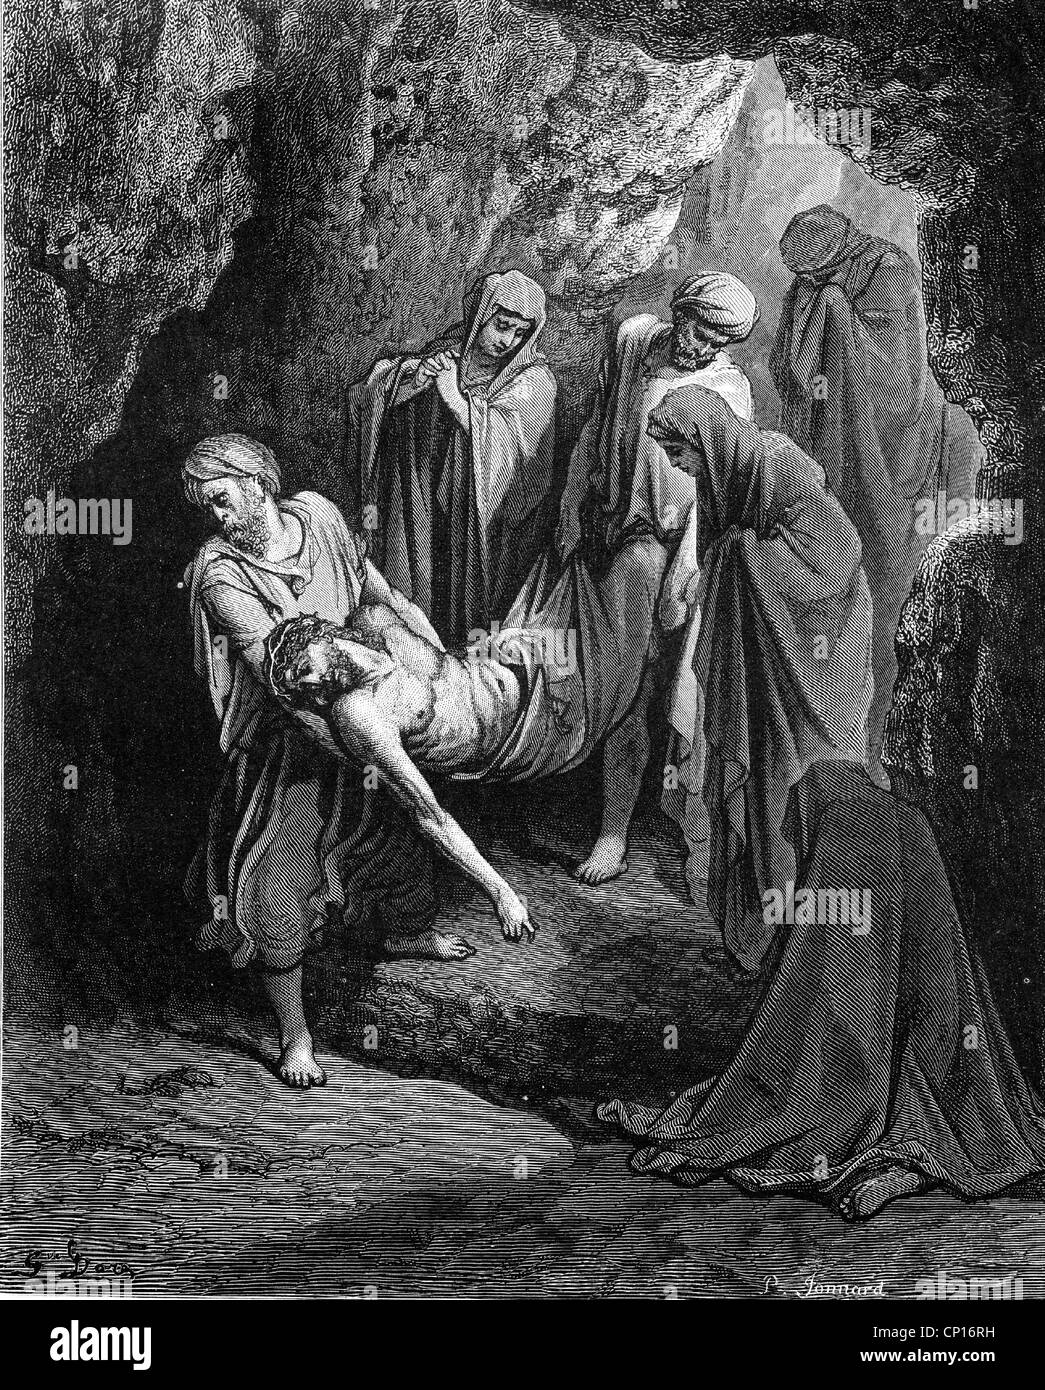 religion, Christianity, Jesus Christ: 'The Entombment of Christ', circa 1866, wood engraving by Gustave - Stock Image